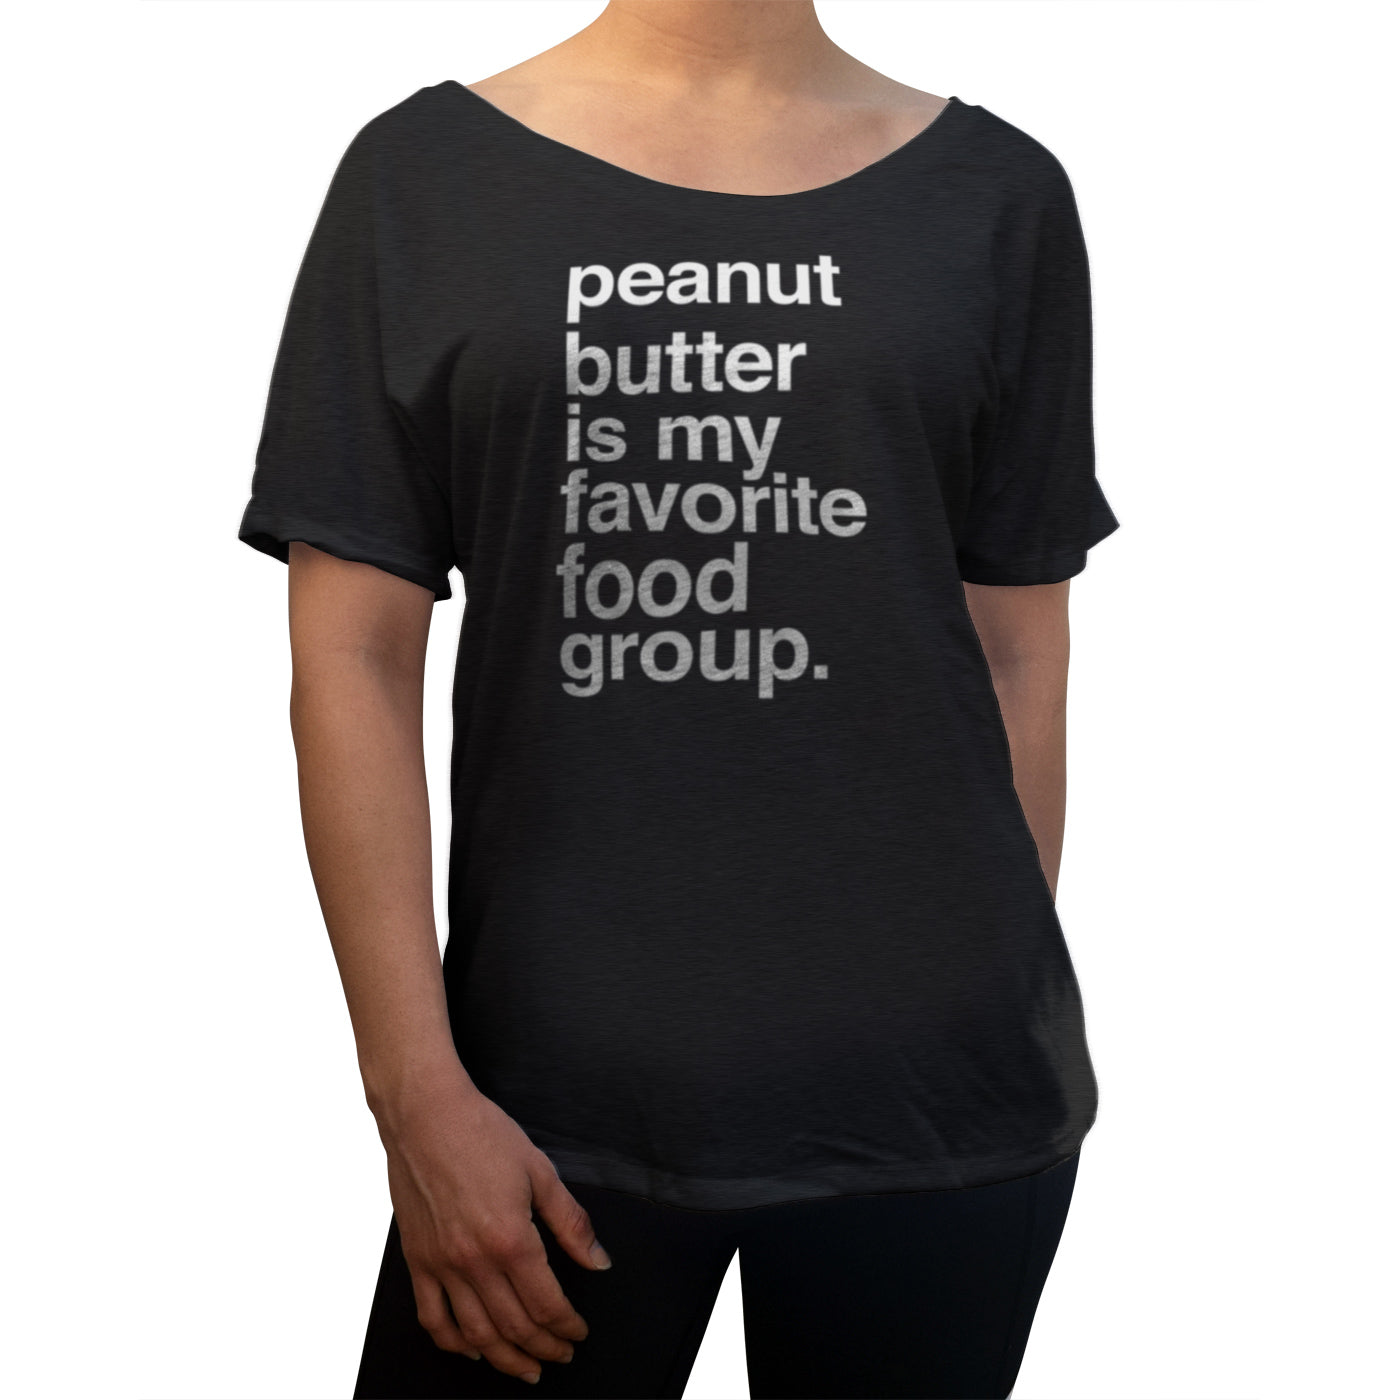 Women's Peanut Butter is My Favorite Food Group Scoop Neck T-Shirt